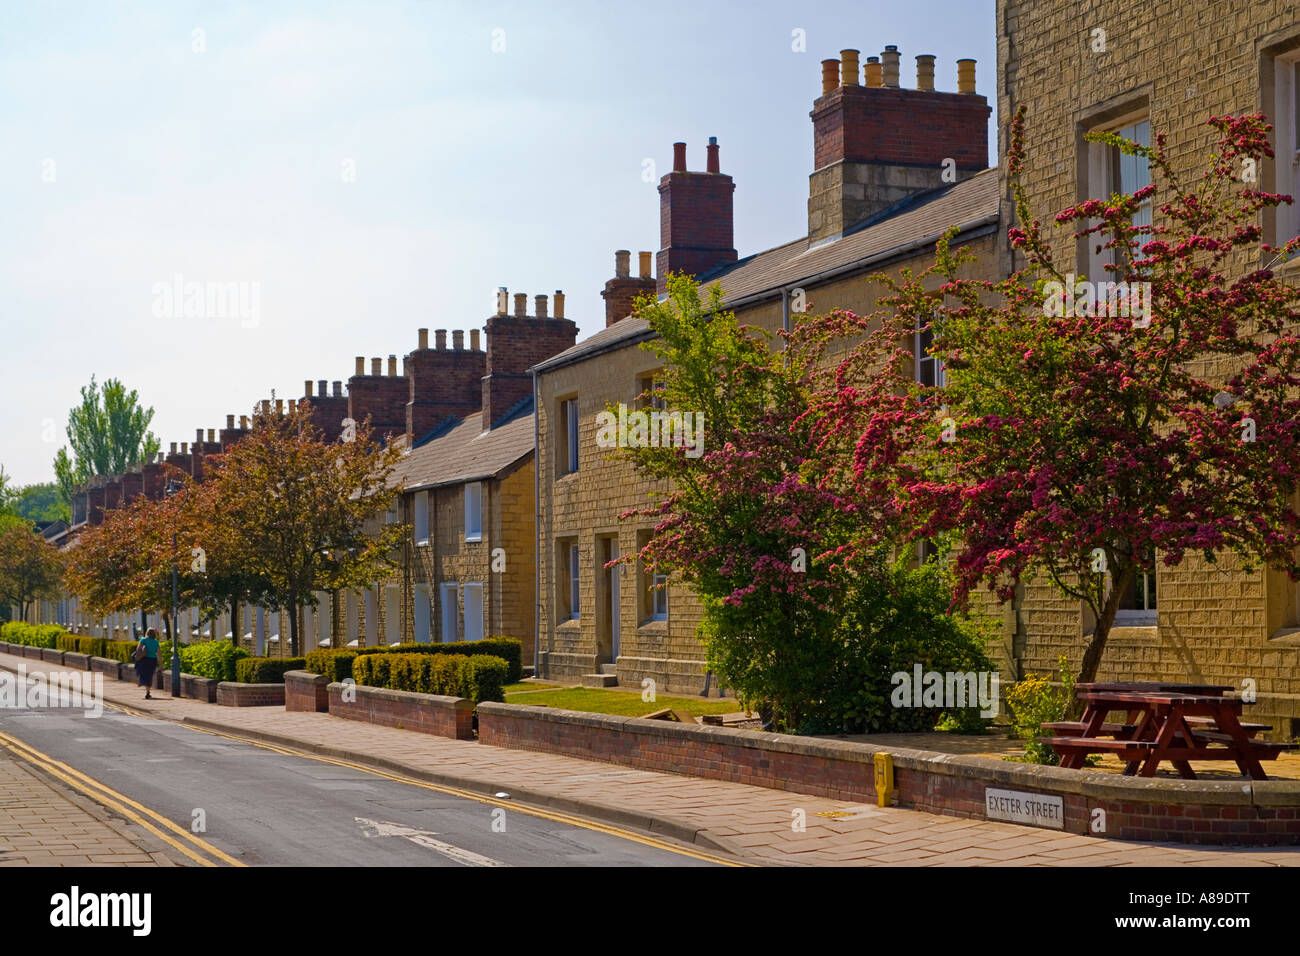 Exeter Street in the Great Western Railway village Swindon workers houses built with stone from the Box Tunnel near Stock Photo